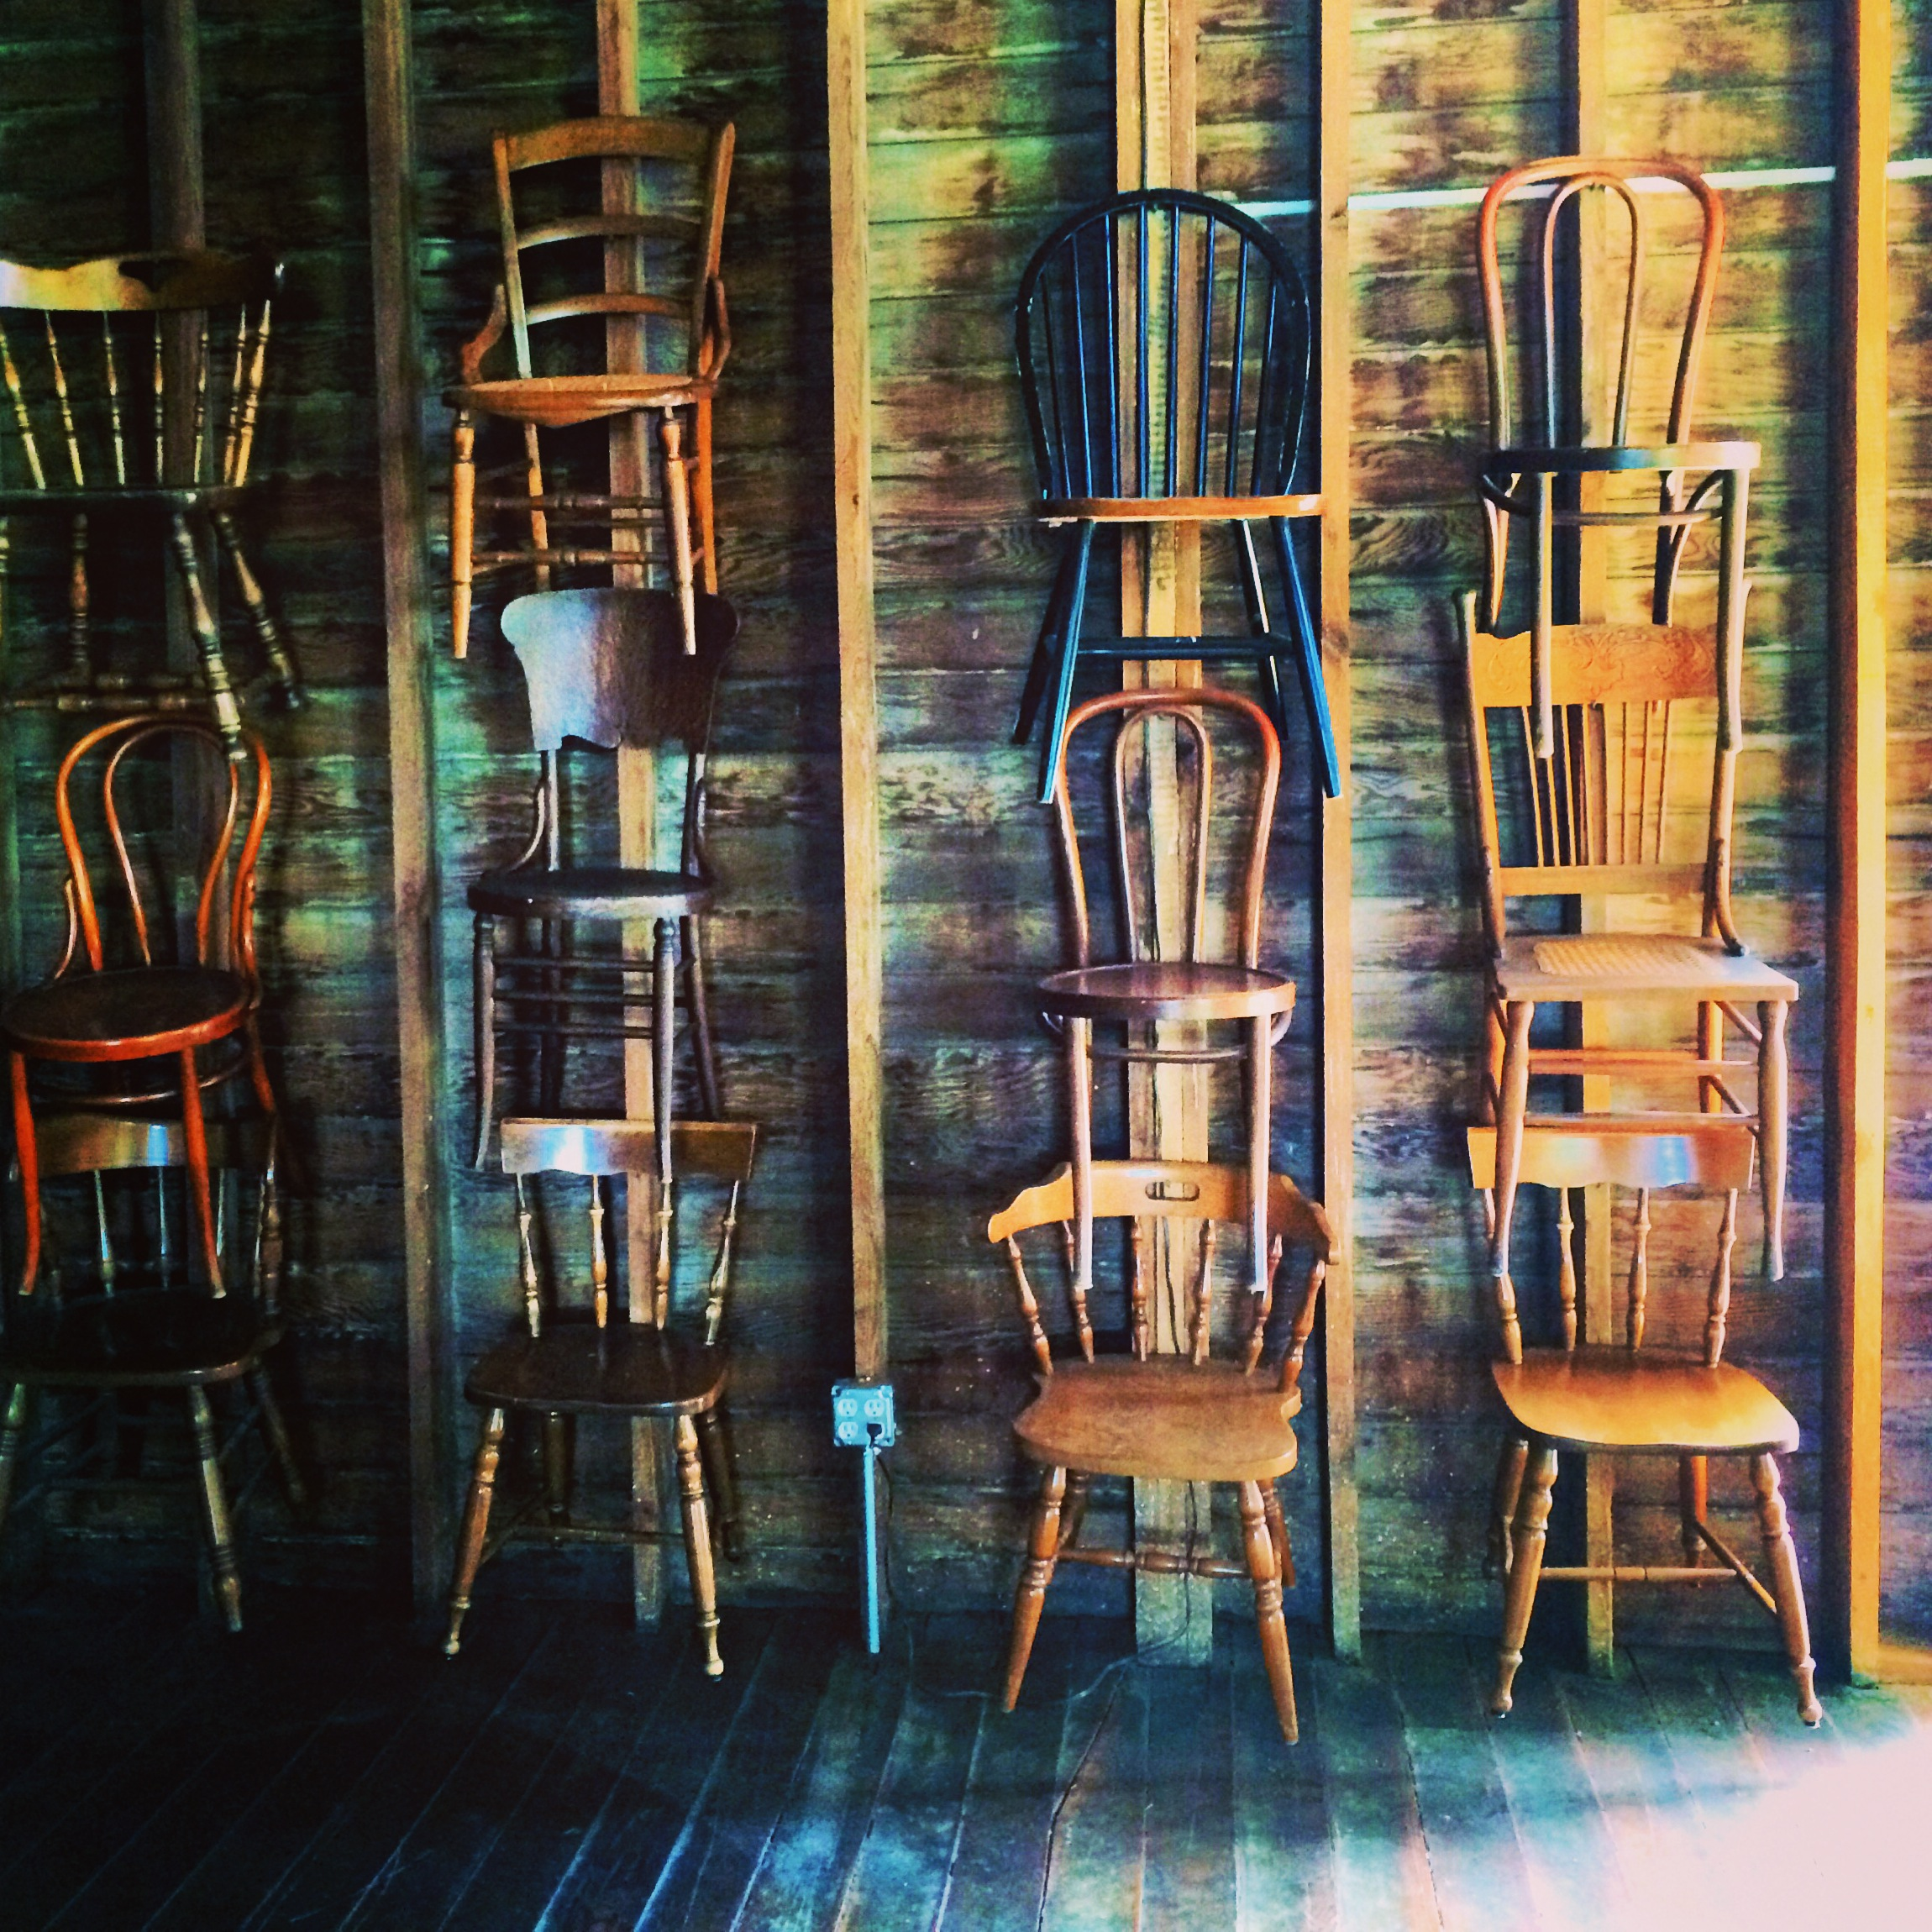 Barn chairs